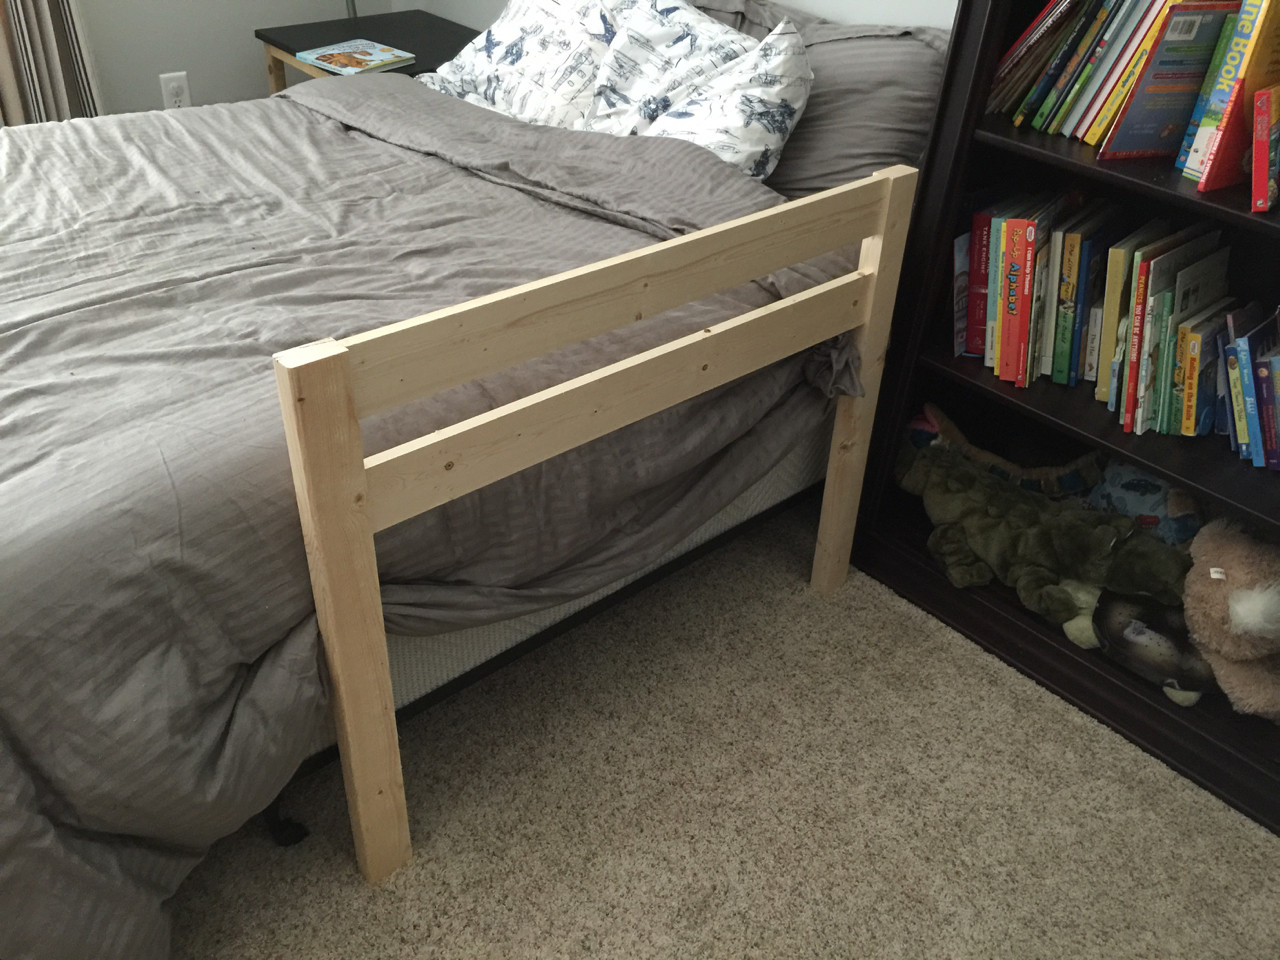 Best ideas about DIY Bed Rails For Toddlers . Save or Pin DIY Toddler Bed Rail Free Plans Now.